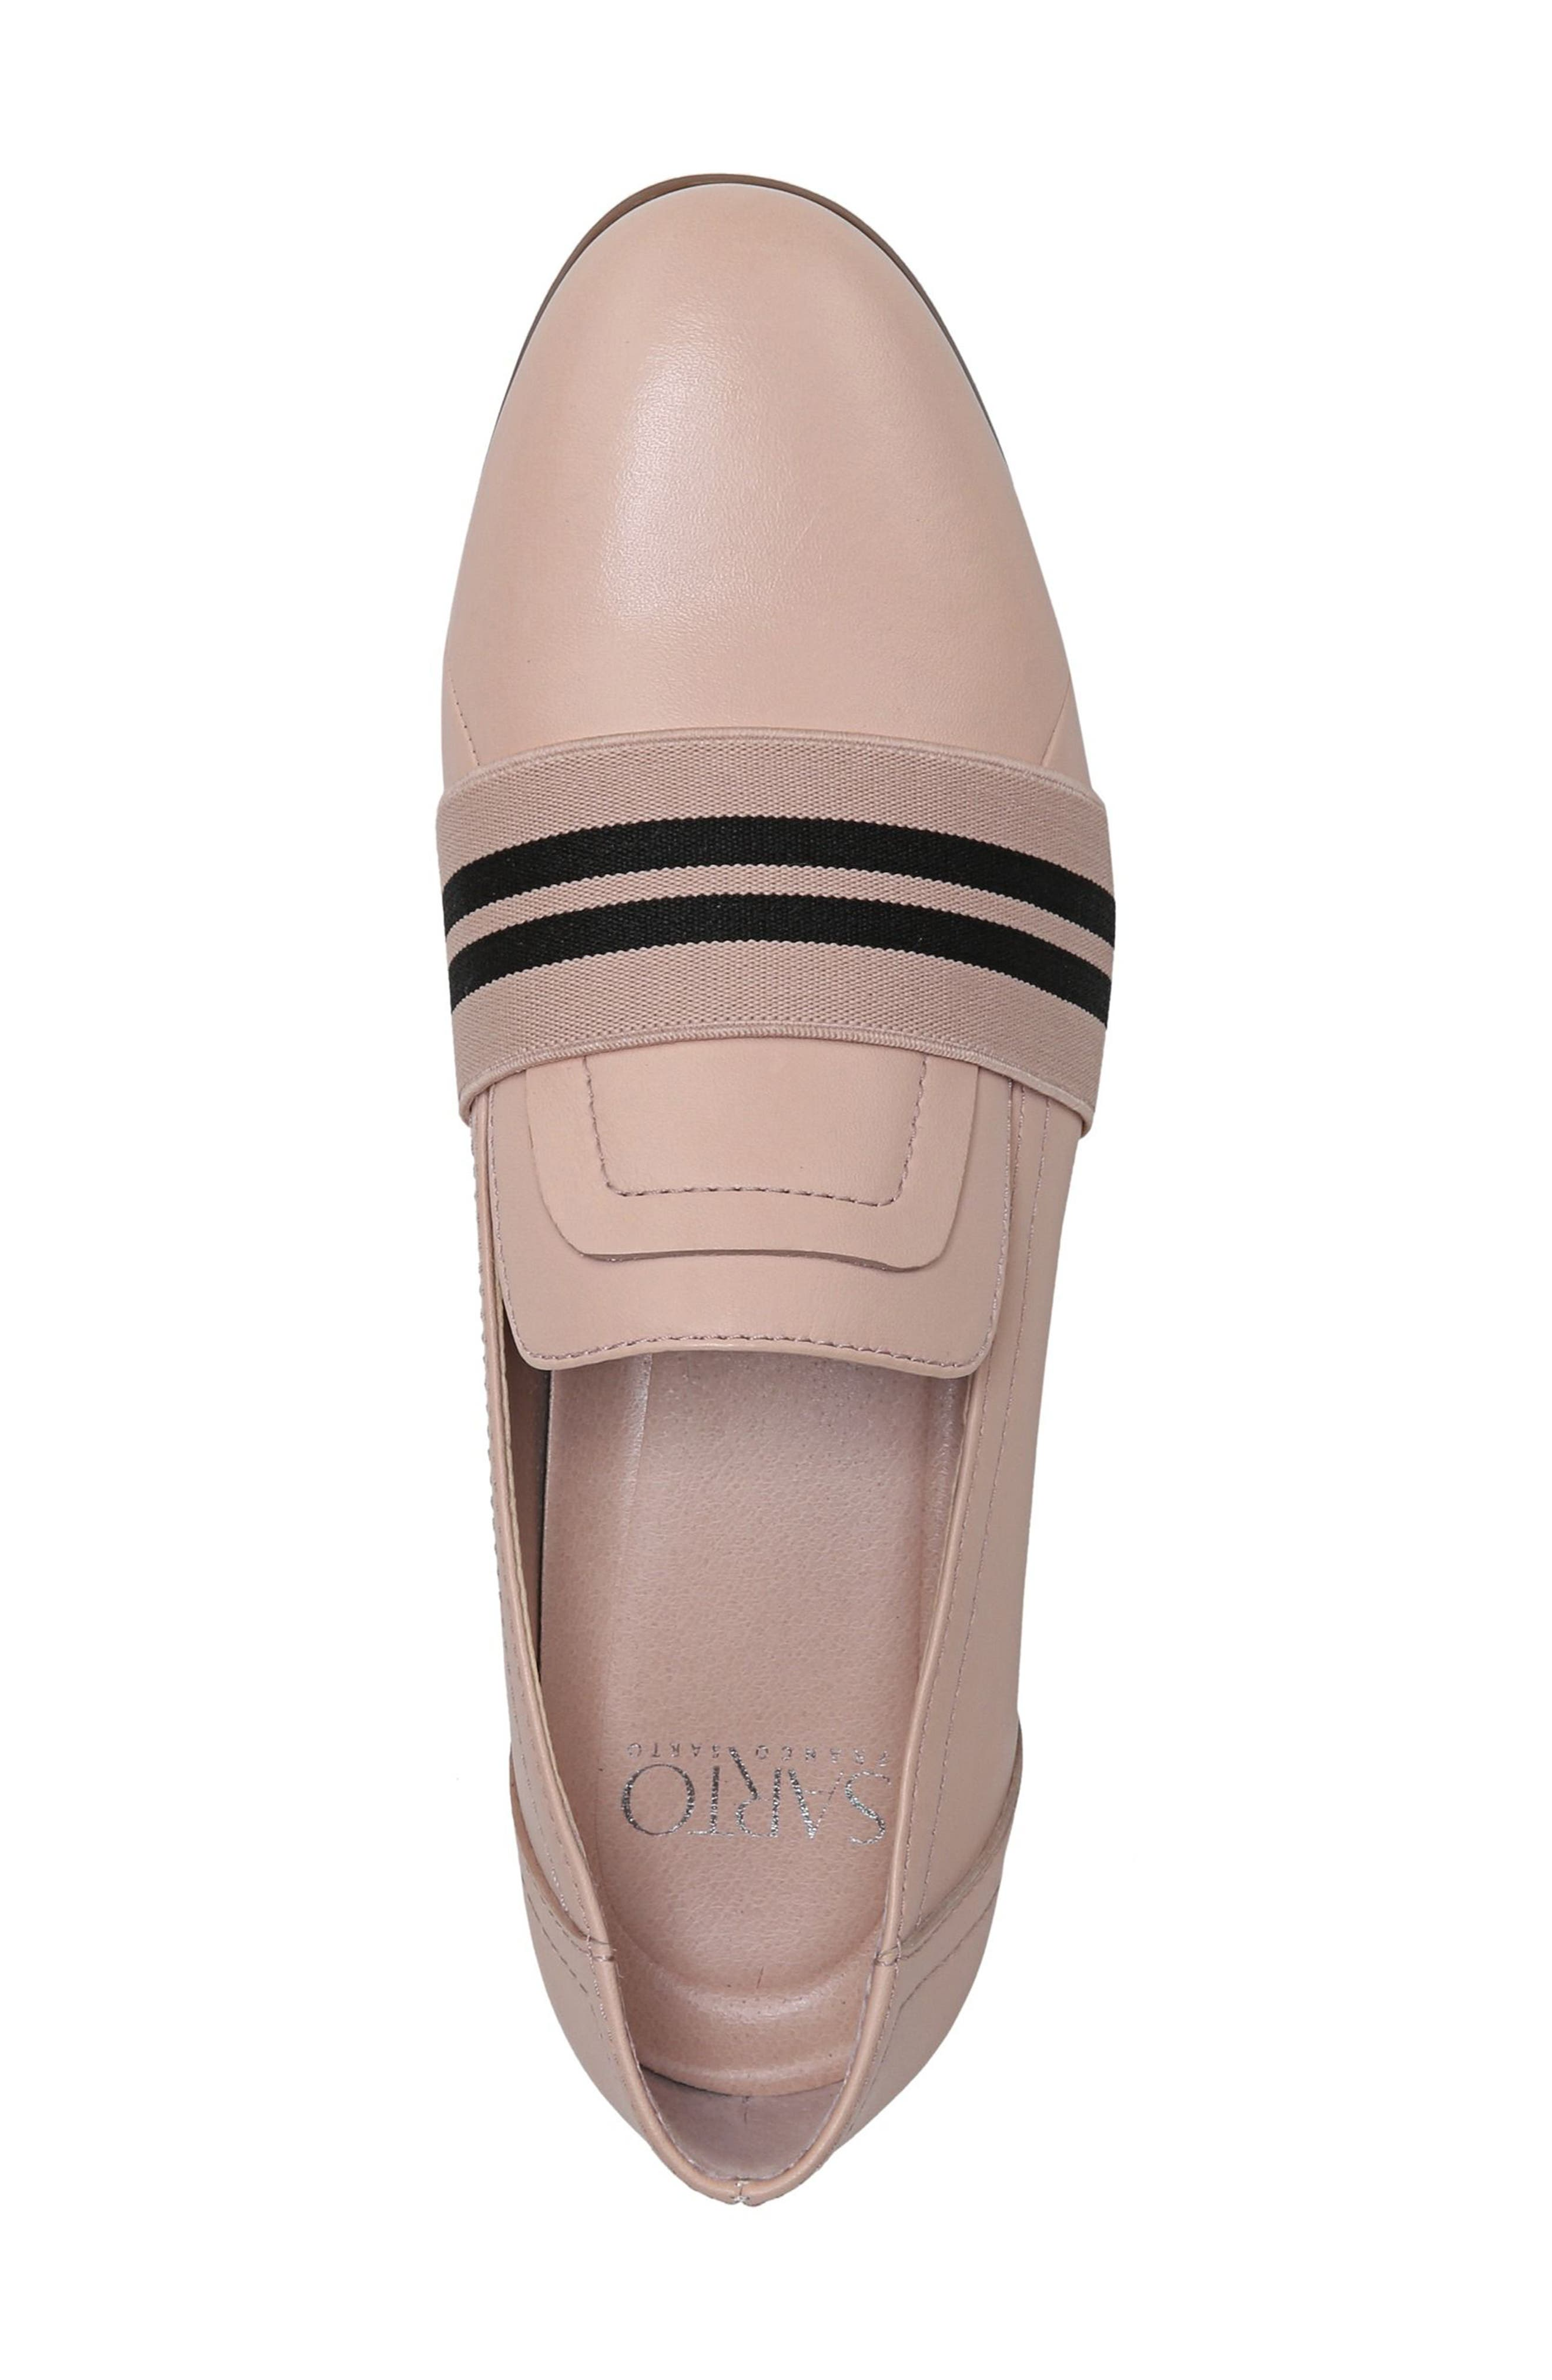 Odyssey Loafer,                             Alternate thumbnail 7, color,                             Blush Leather